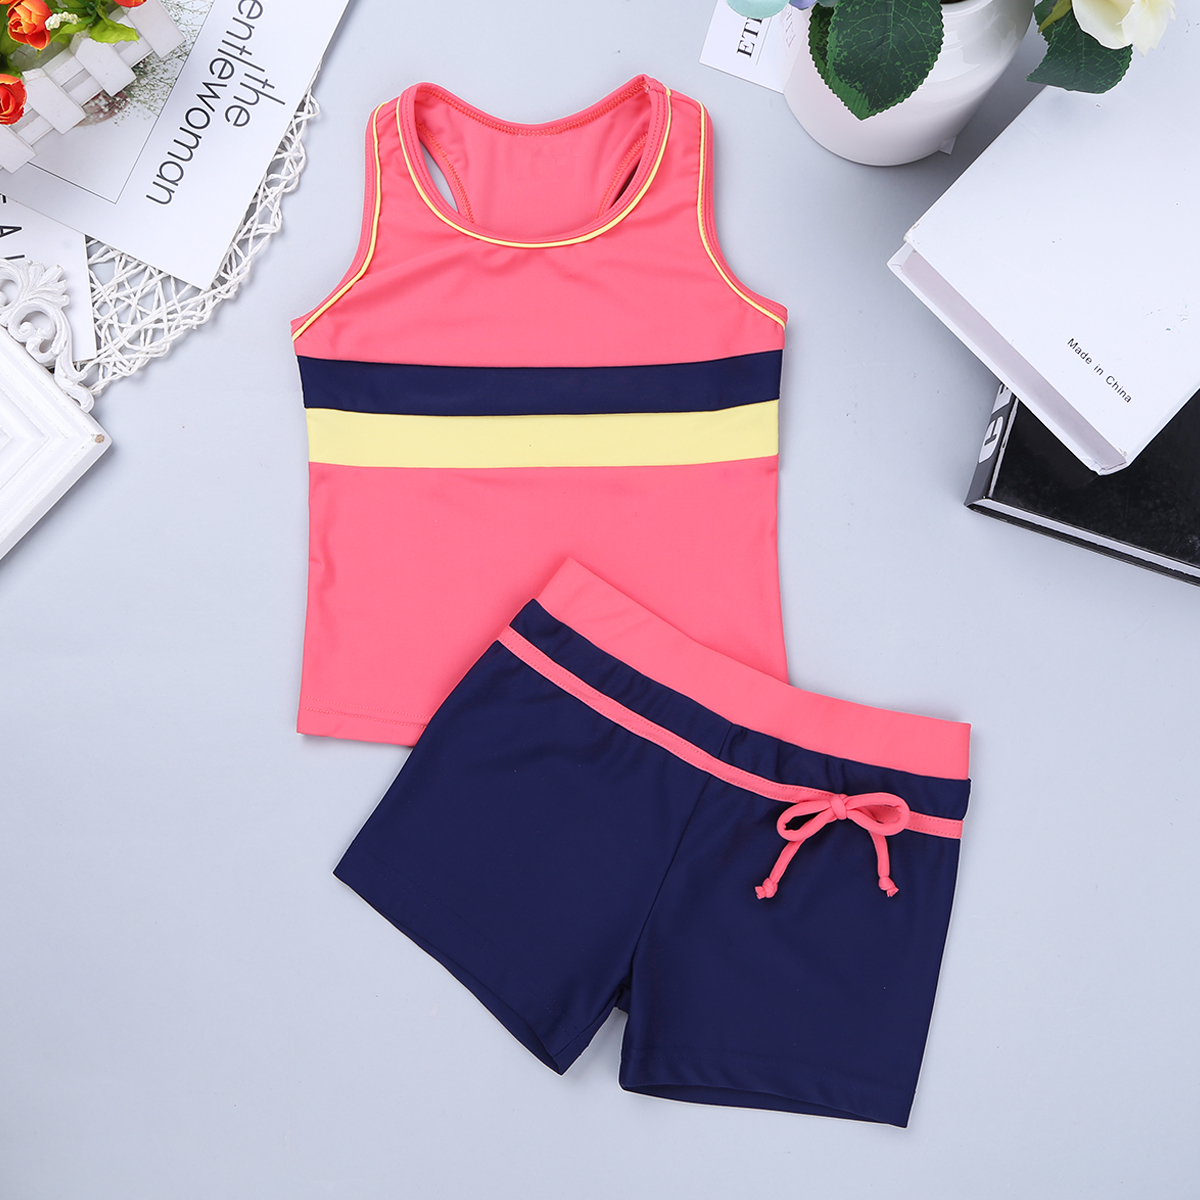 583e823be1eff Buy girls swimsuit size 14 and get free shipping on AliExpress.com